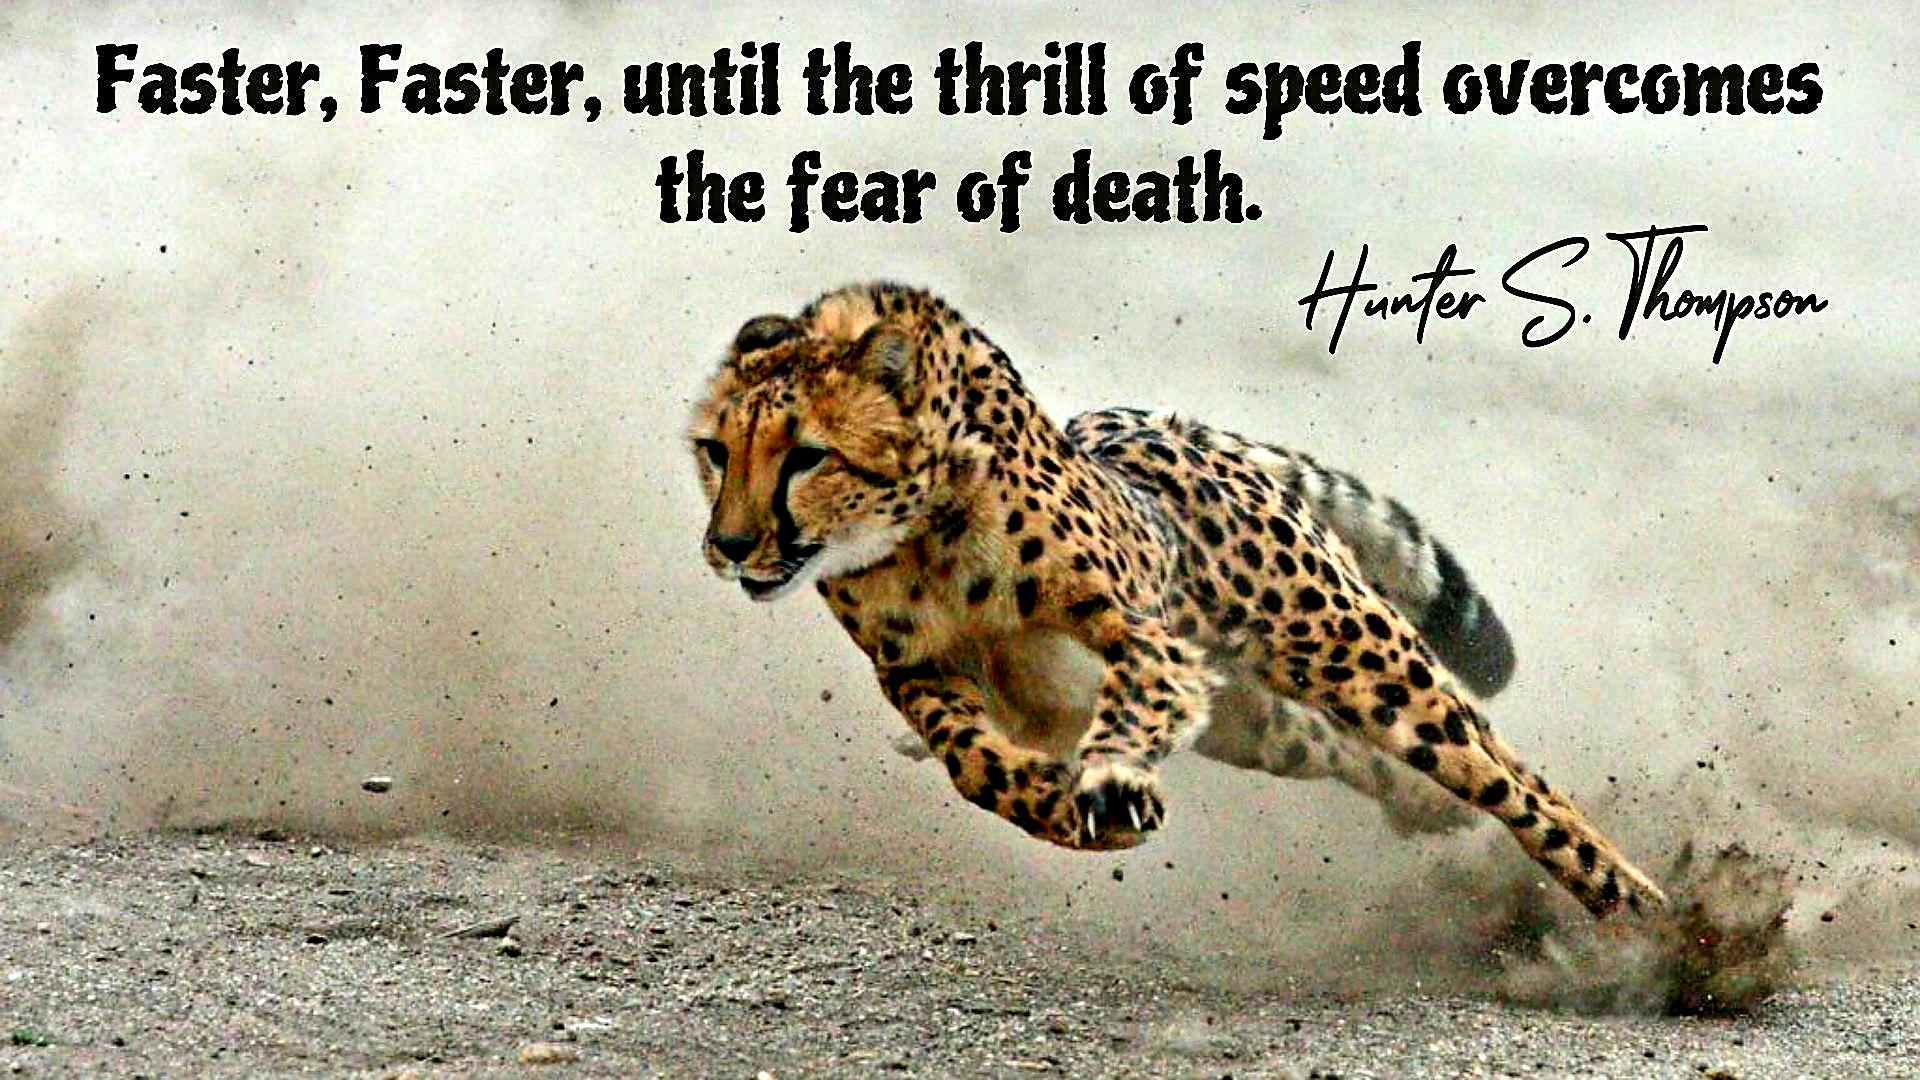 """Faster, faster, until the thrill of speed overcomes the fear of death."" – Hunter S. Thompson [1920×1080]"